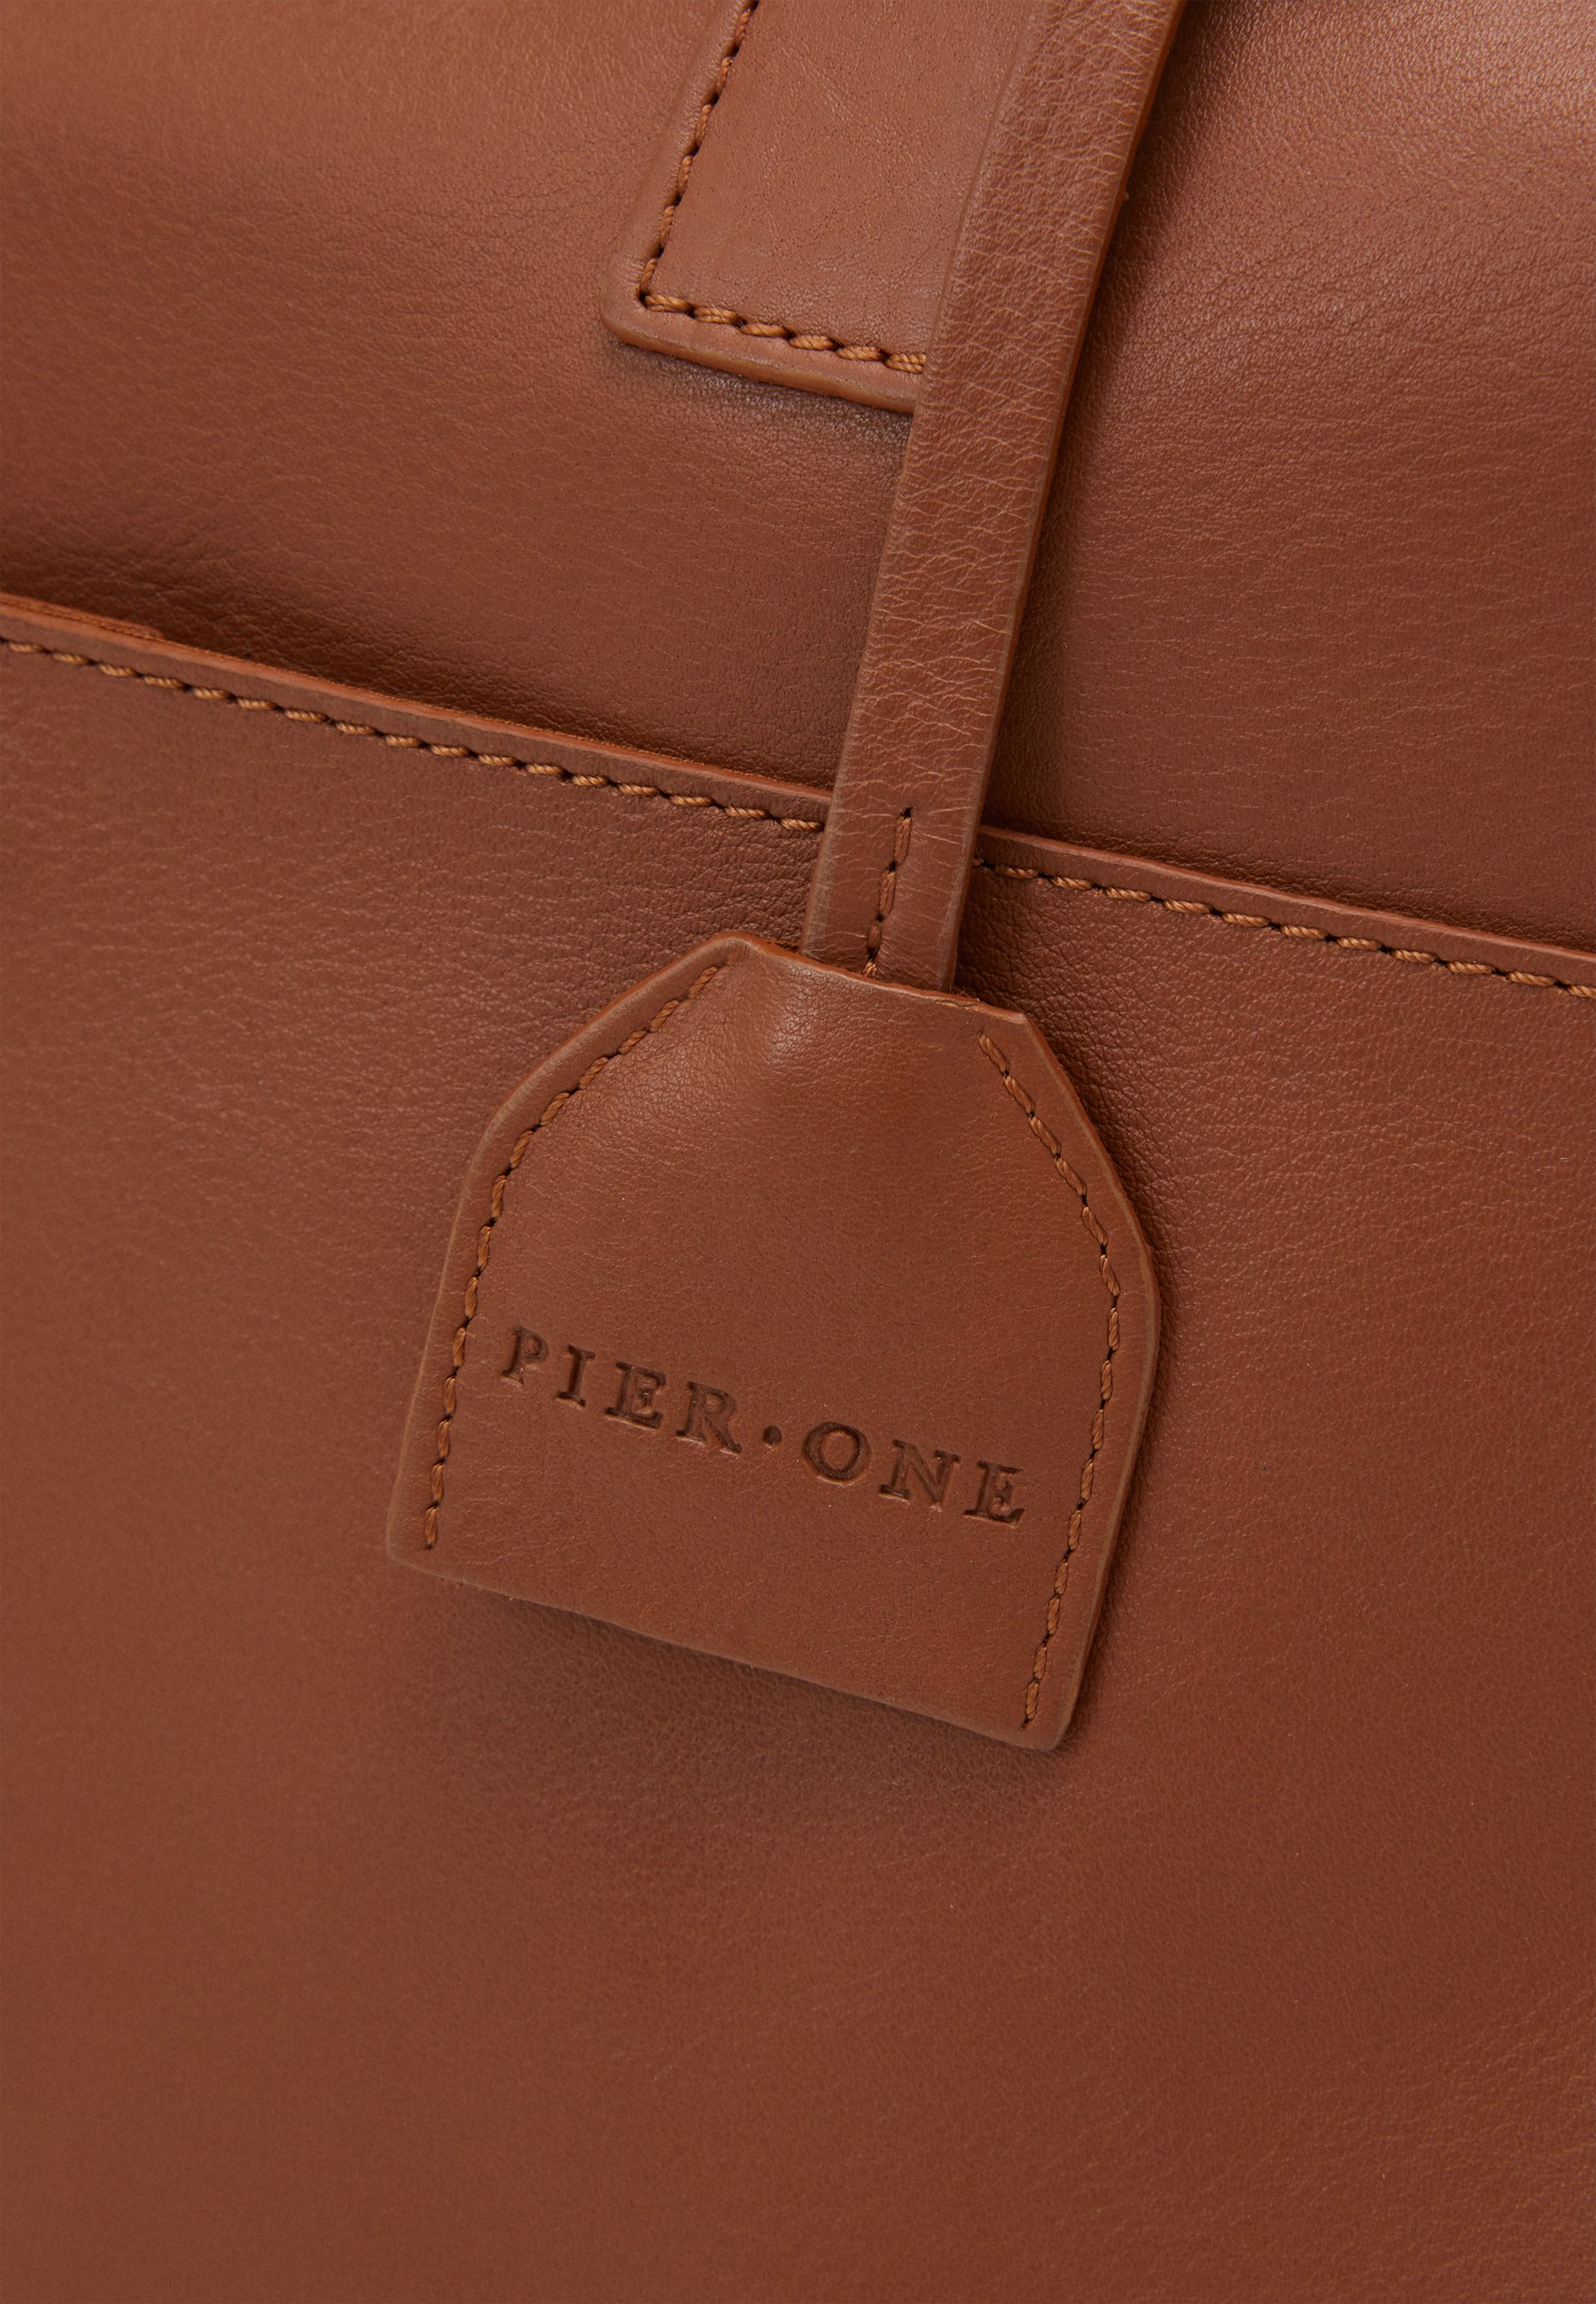 Pier One LEATHER - Stresskoffert - cognac/konjakk bFCSiHv7qjJSICj